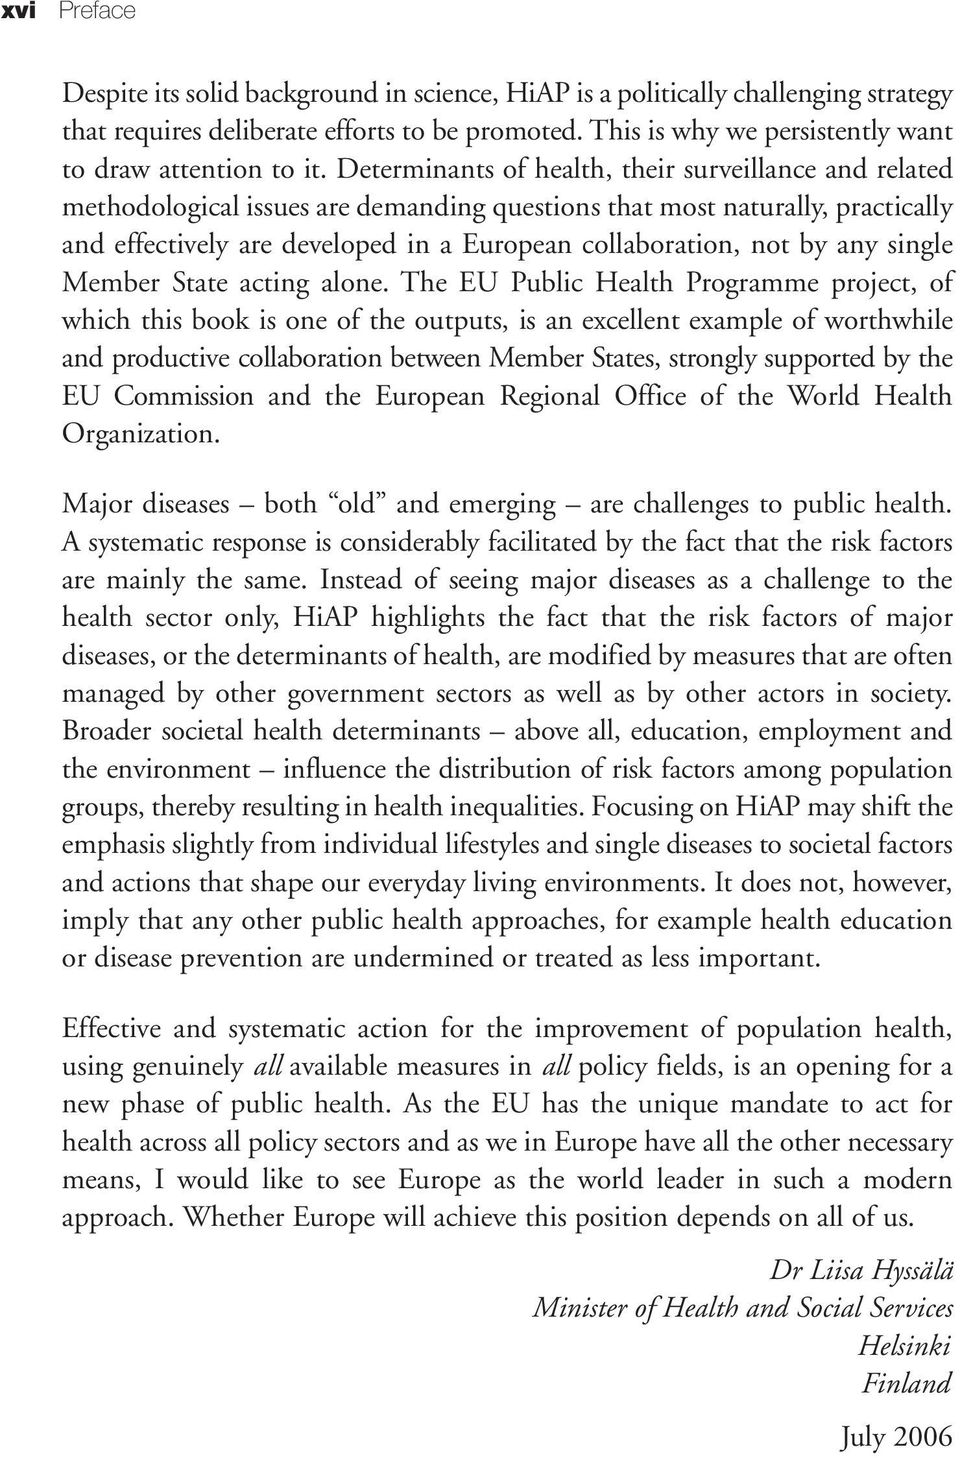 Determinants of health, their surveillance and related methodological issues are demanding questions that most naturally, practically and effectively are developed in a European collaboration, not by